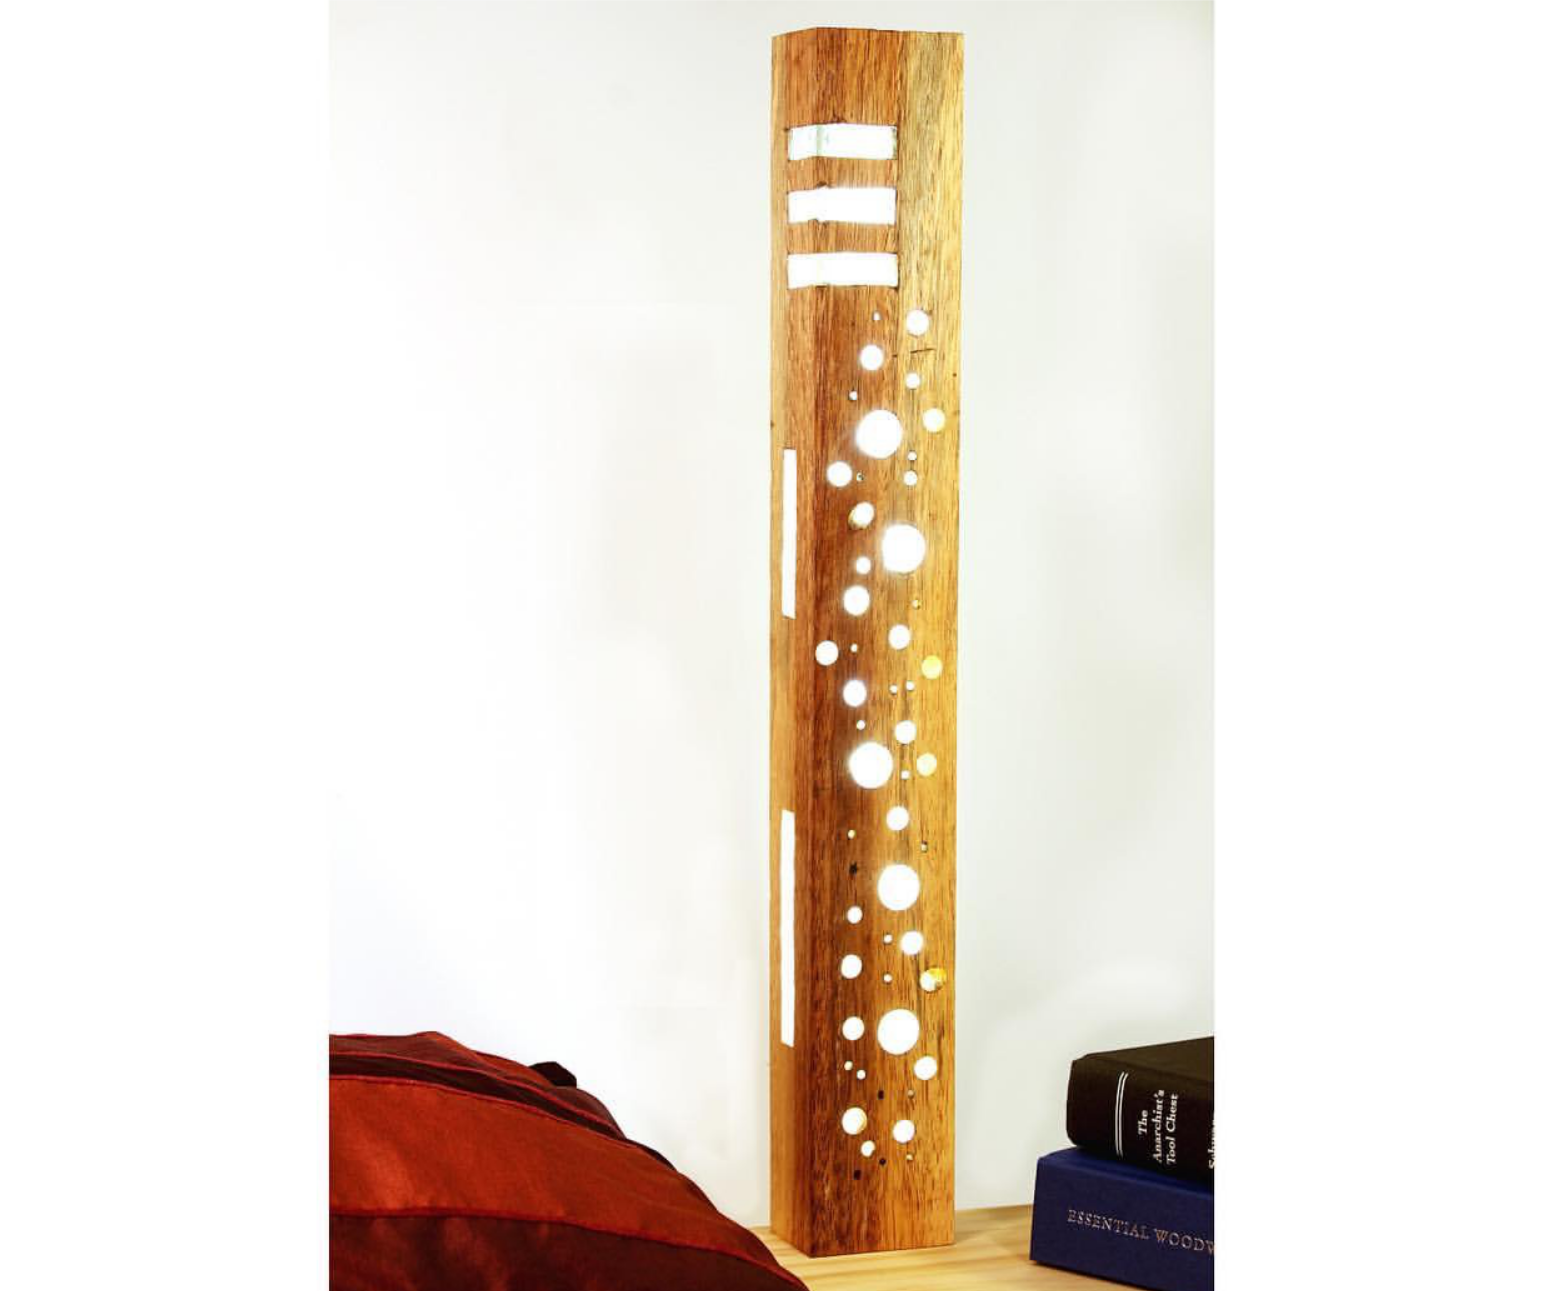 Make a resin and LED lamp with handtools